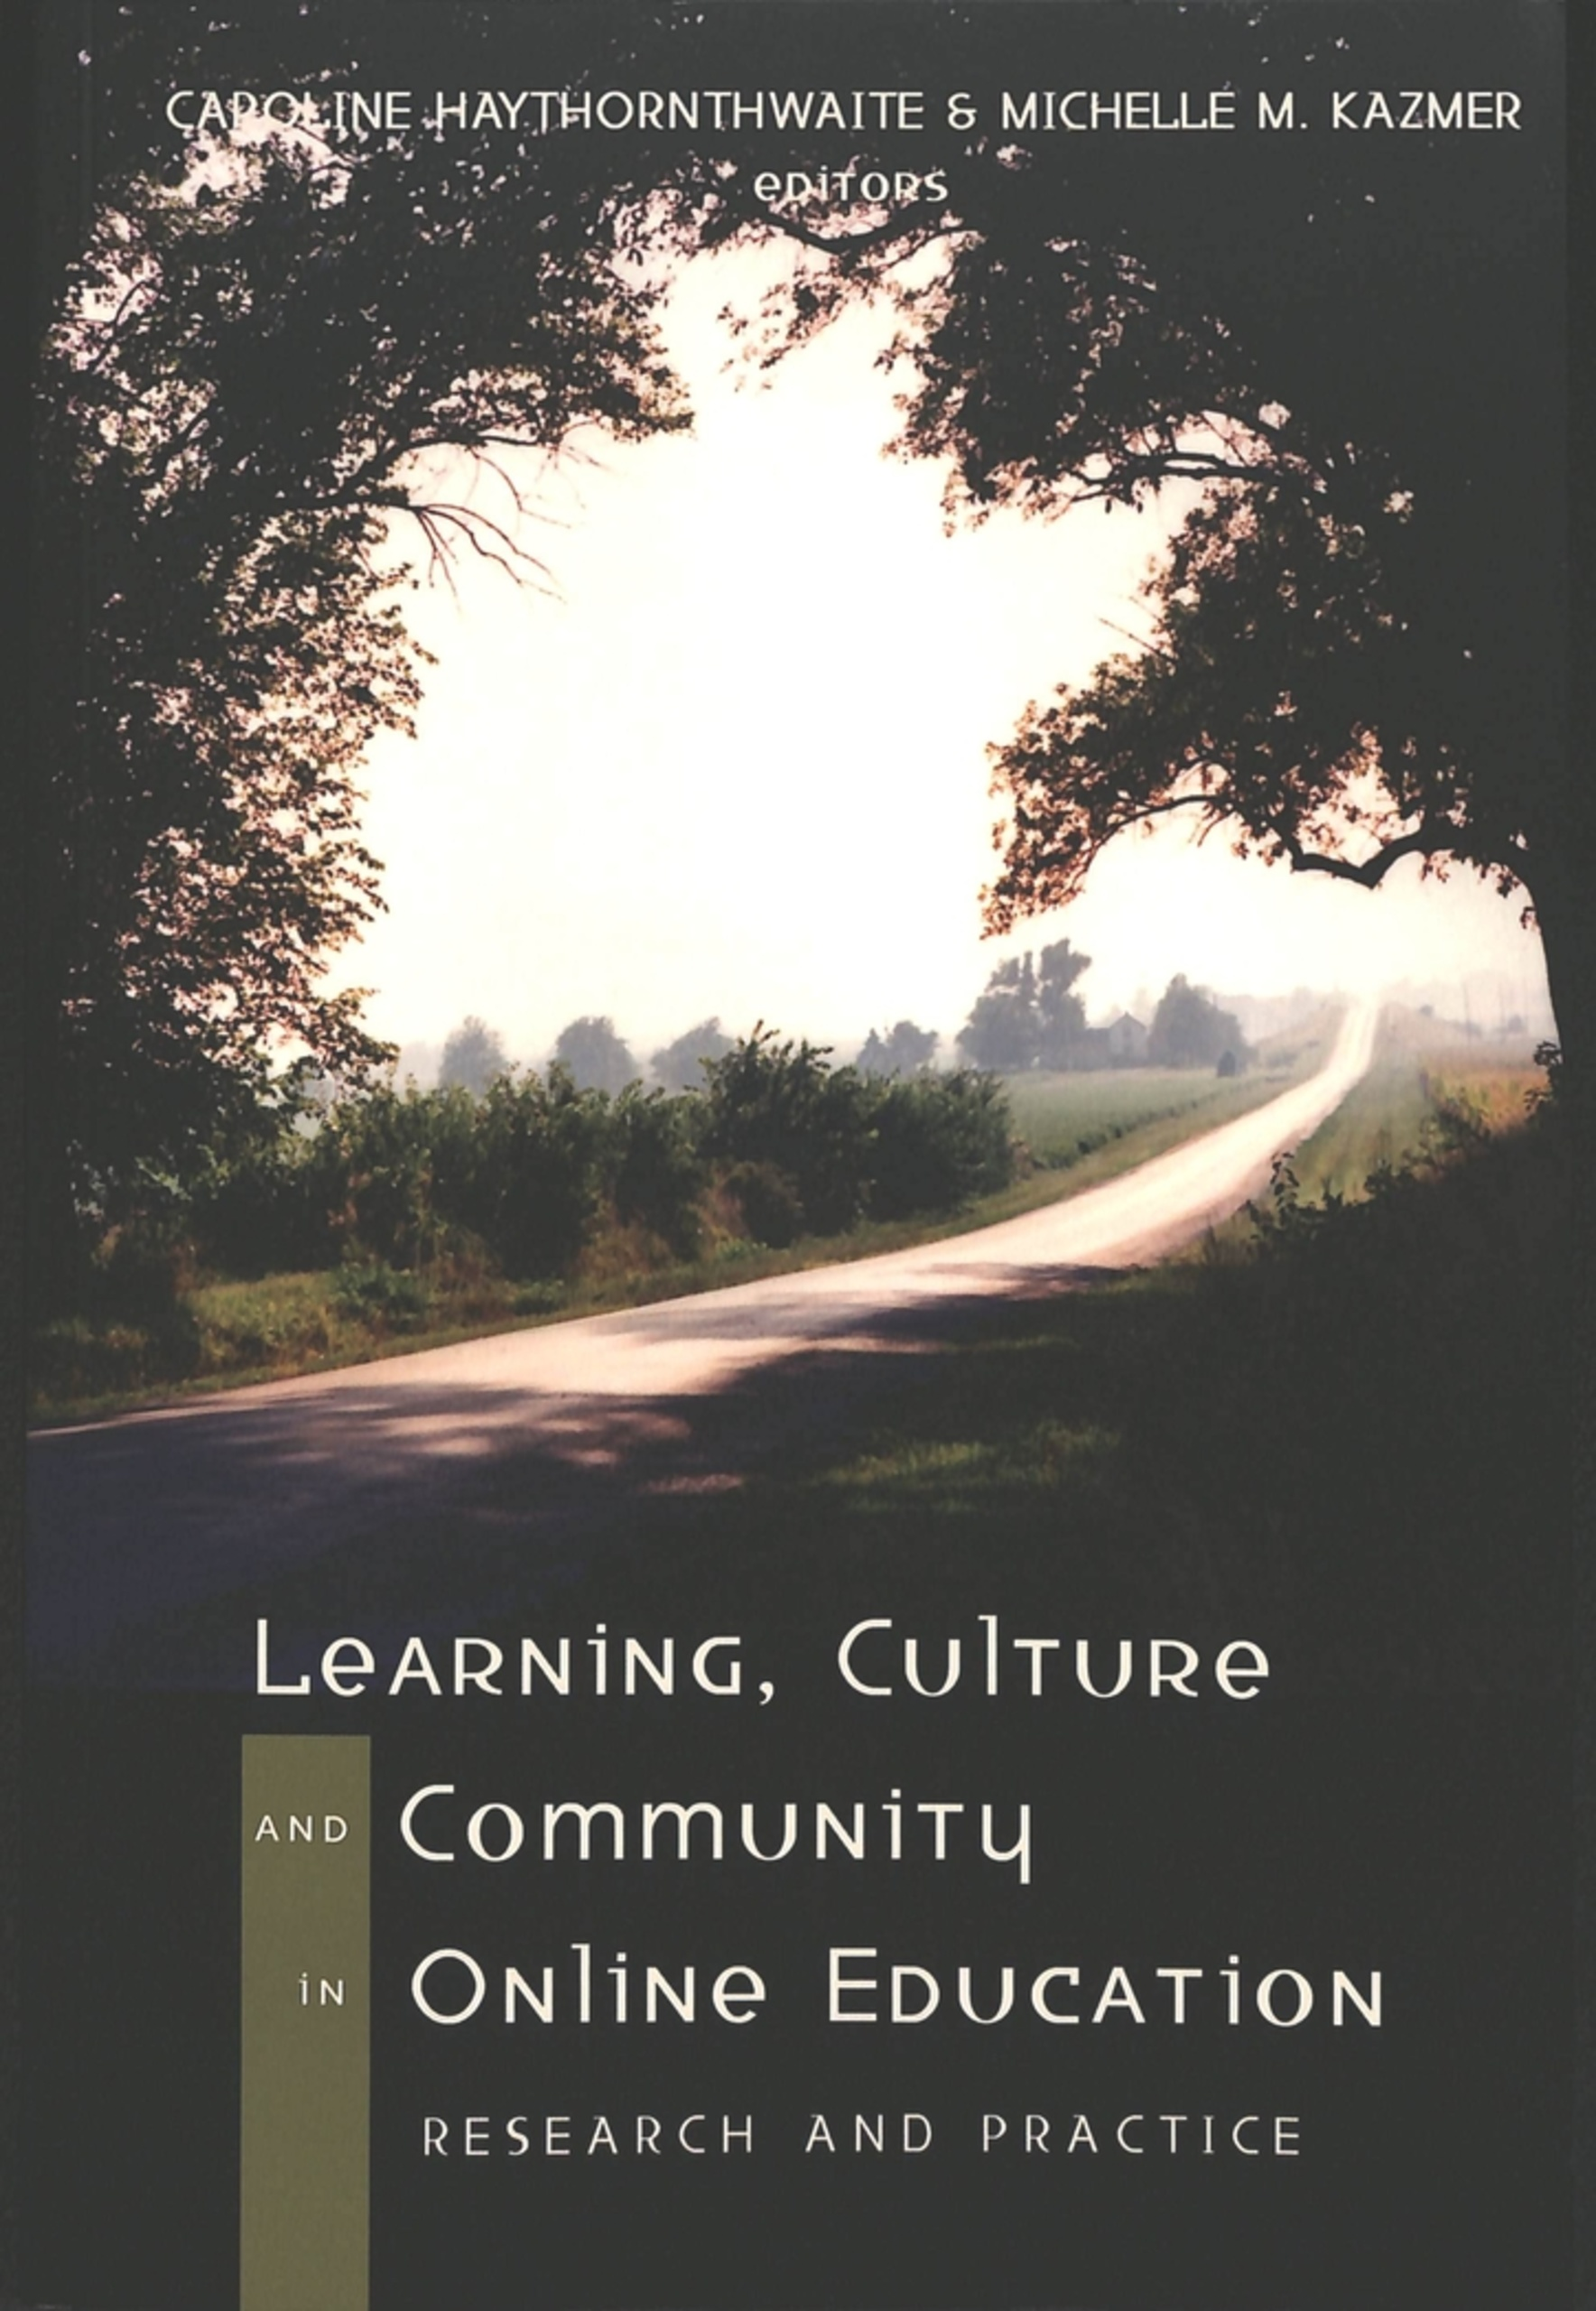 Title: Learning, Culture and Community in Online Education